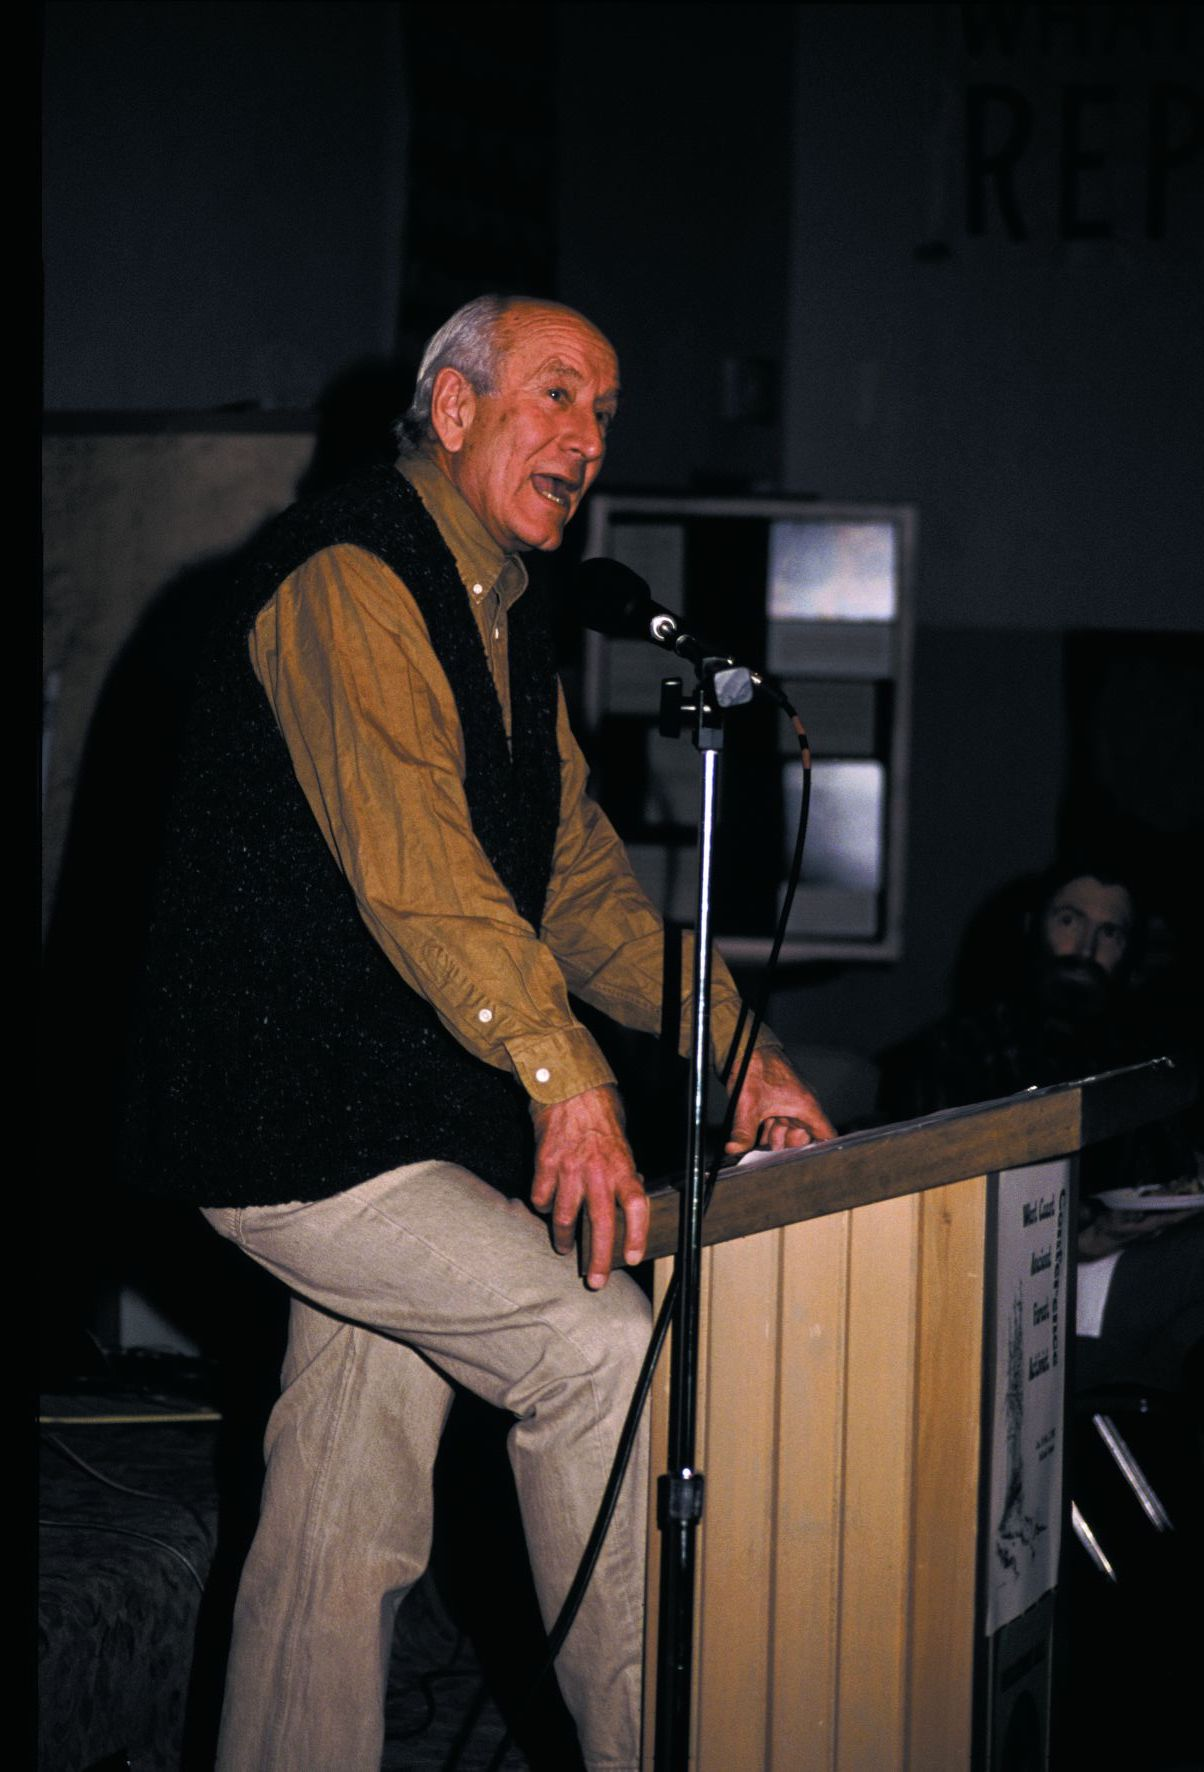 Jim Weaver, Oregon conservationists (ca early 1990s).  Source: Elizabeth Feryl, Environmental Images